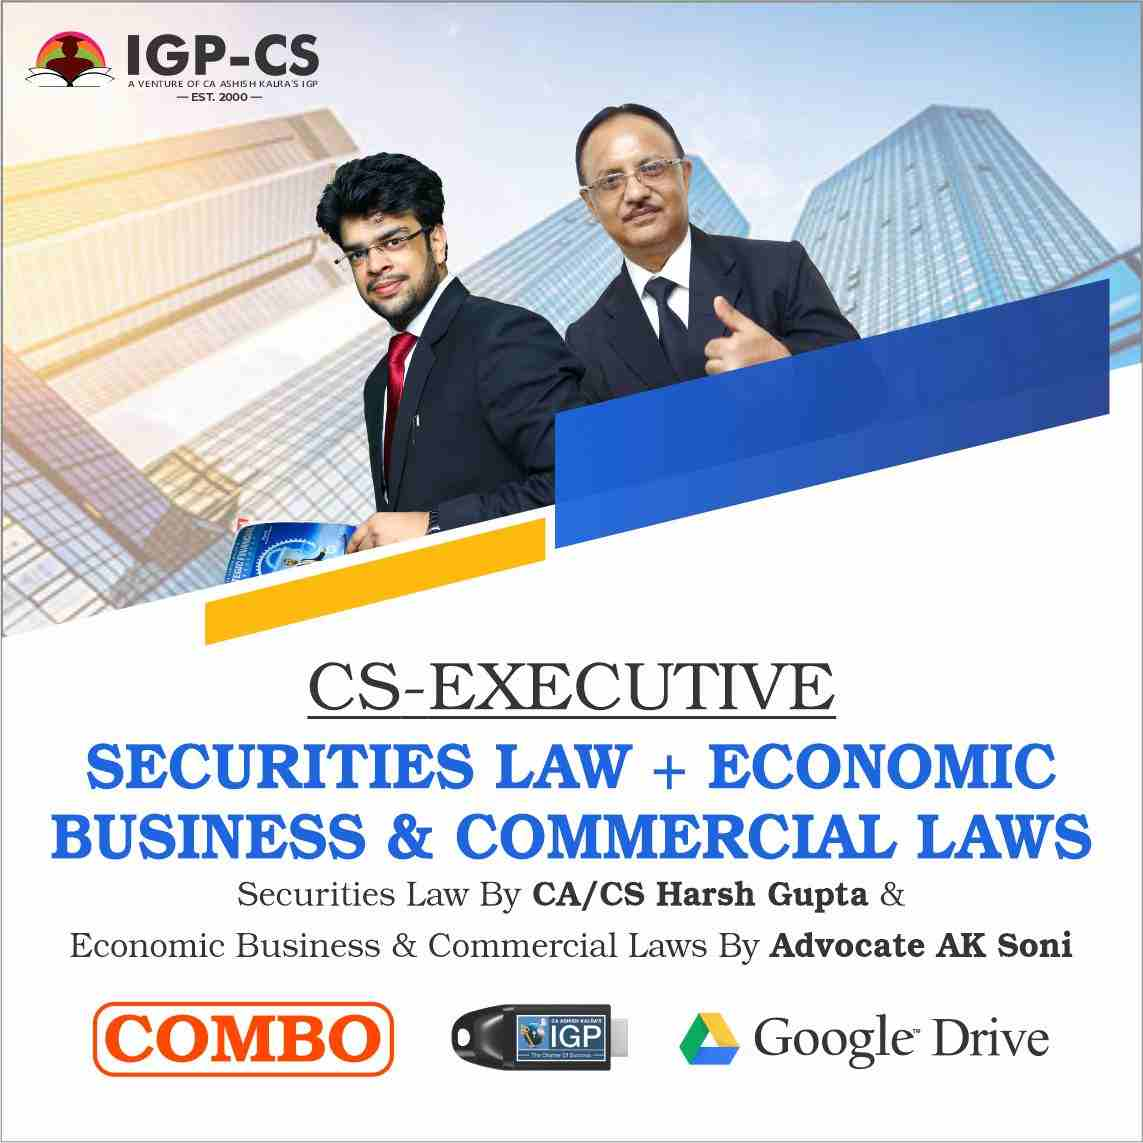 Combo (Securities Law+EBCL)